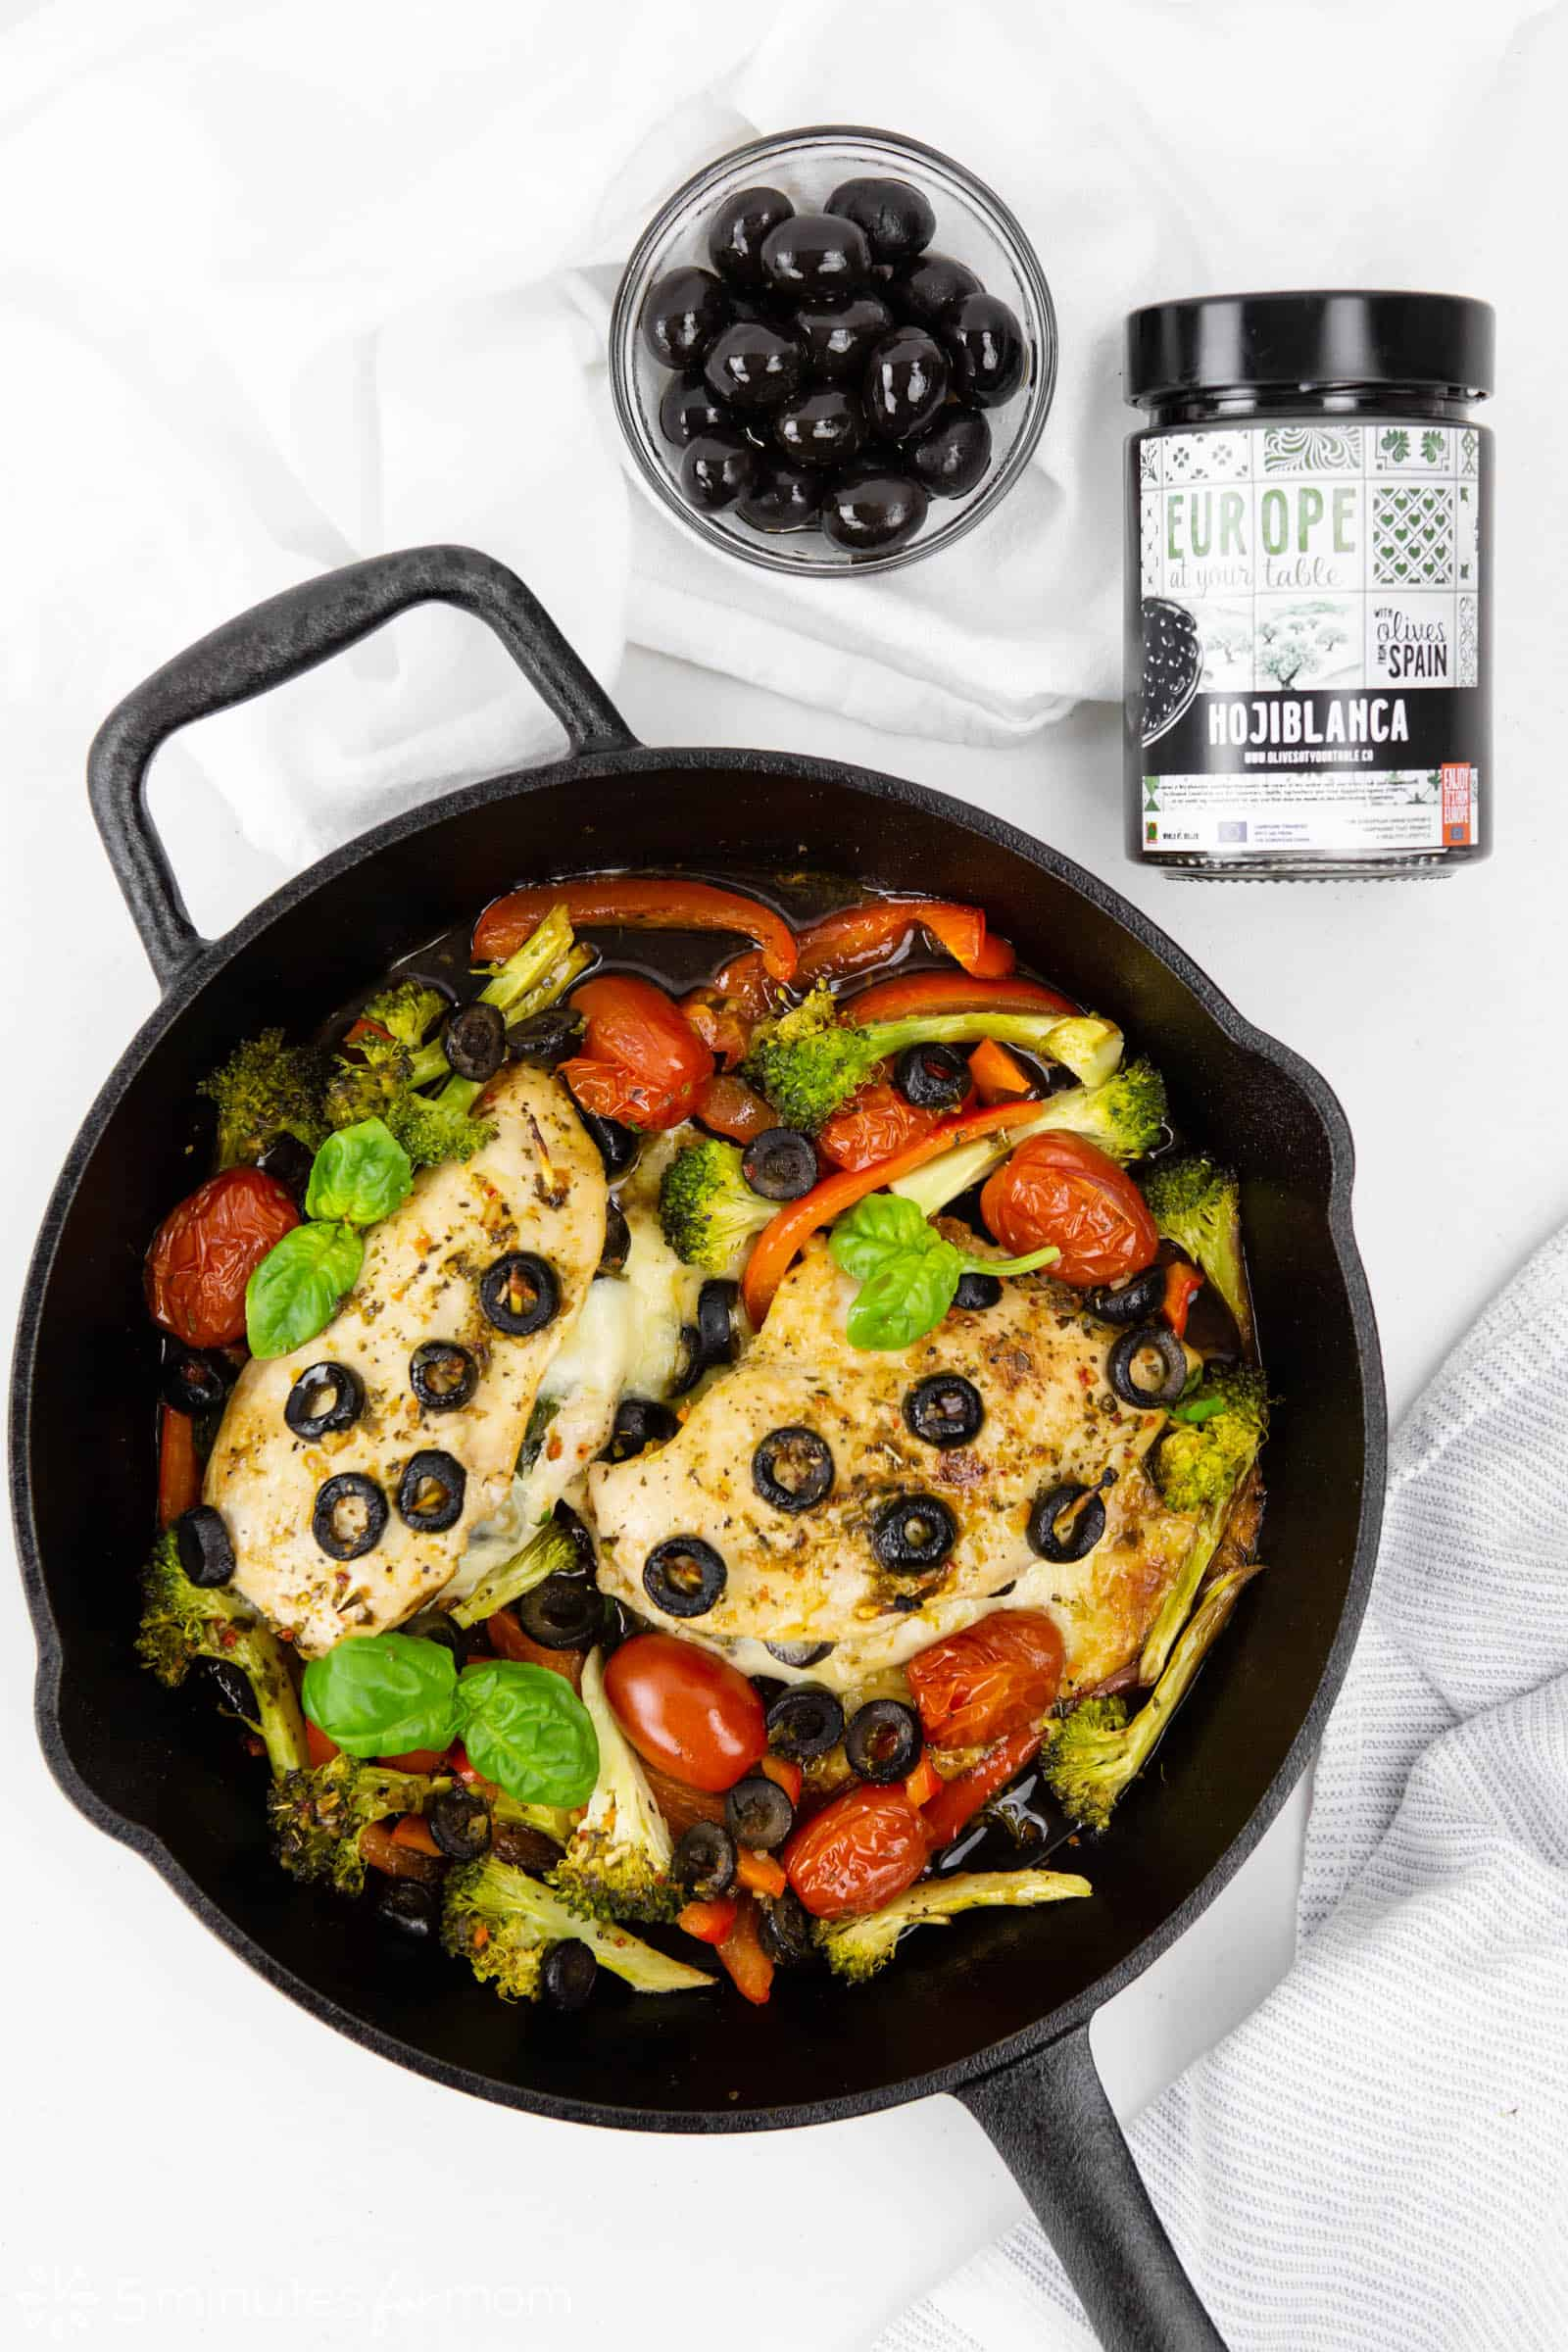 Stuffed Chicken Breasts with Spinach Cheese and Olives